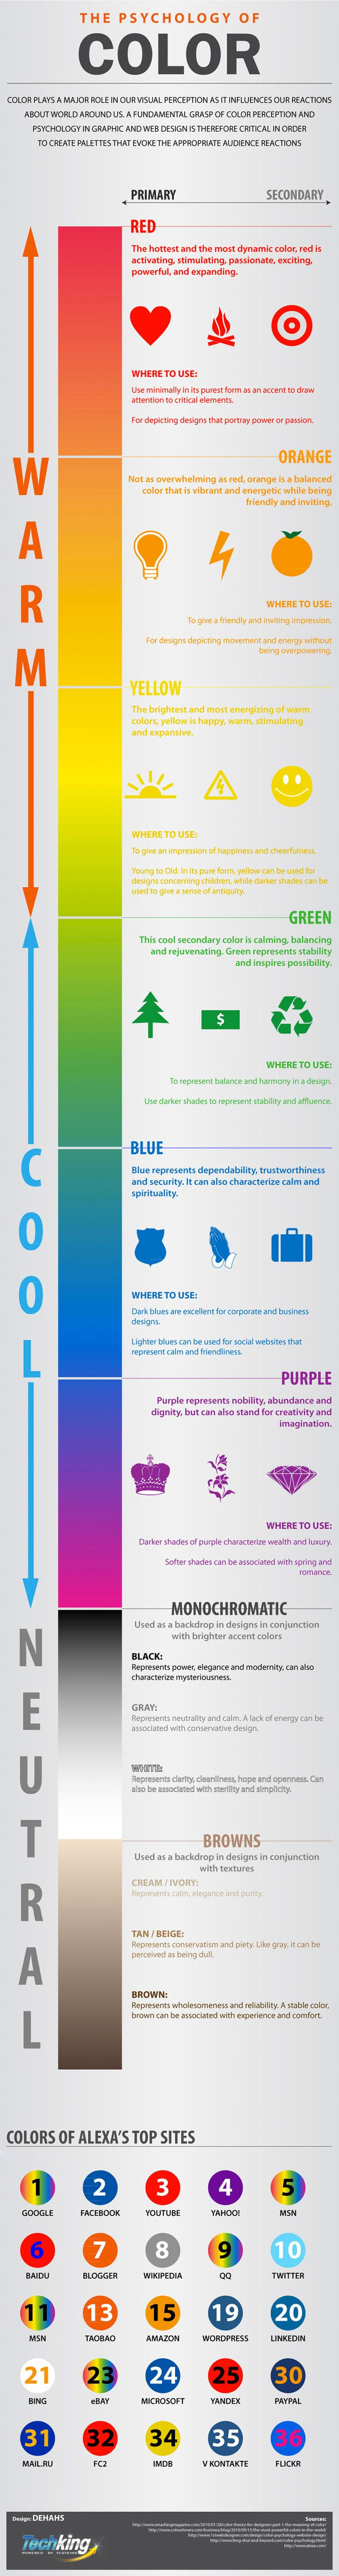 Did you know that blue is used for corporate and business designs because it represents dependability, trustworthiness and security? Orange is used to give a friendly impression without being overpowering. Darker shades of purple characterize wealth and luxury. Here's a handy lil' infographic by TechKing that covers the psychology of different colors, their appropriate usage and […]